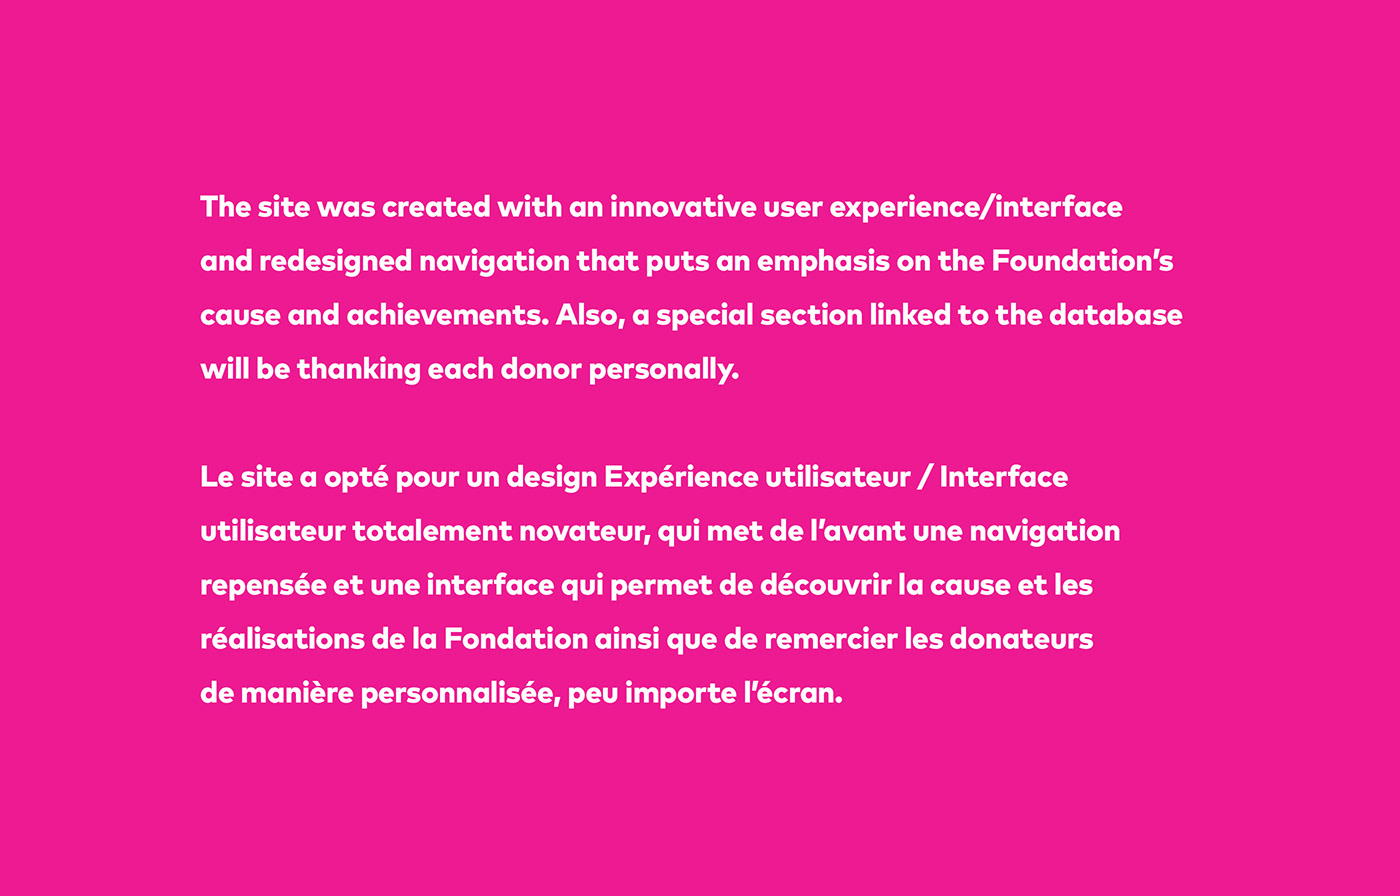 graphic design ,Website,site web,pédiatrie,imagerie,user experience,user interface,Fondation,child care,foundation